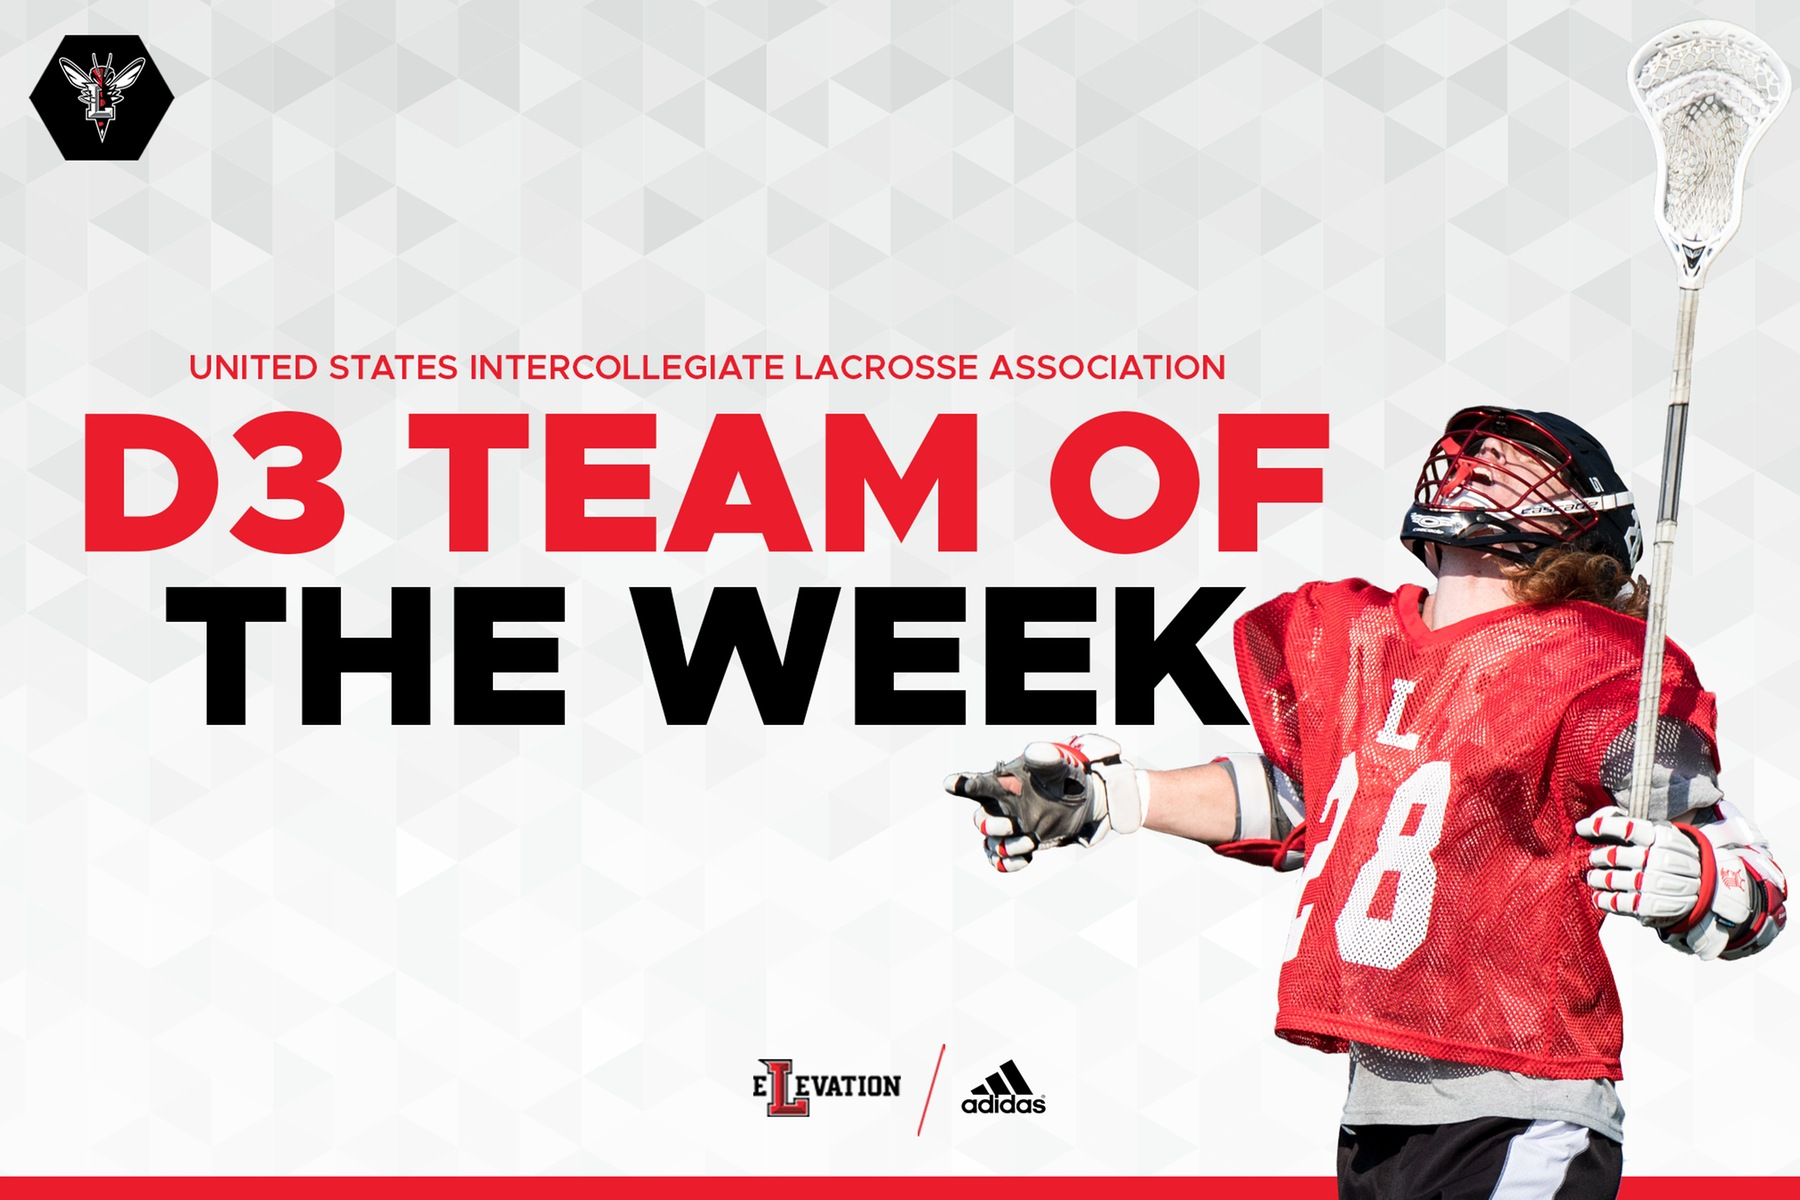 D3 team of the week graphic with Kevin Rogers holding lacrosse stick on white background.